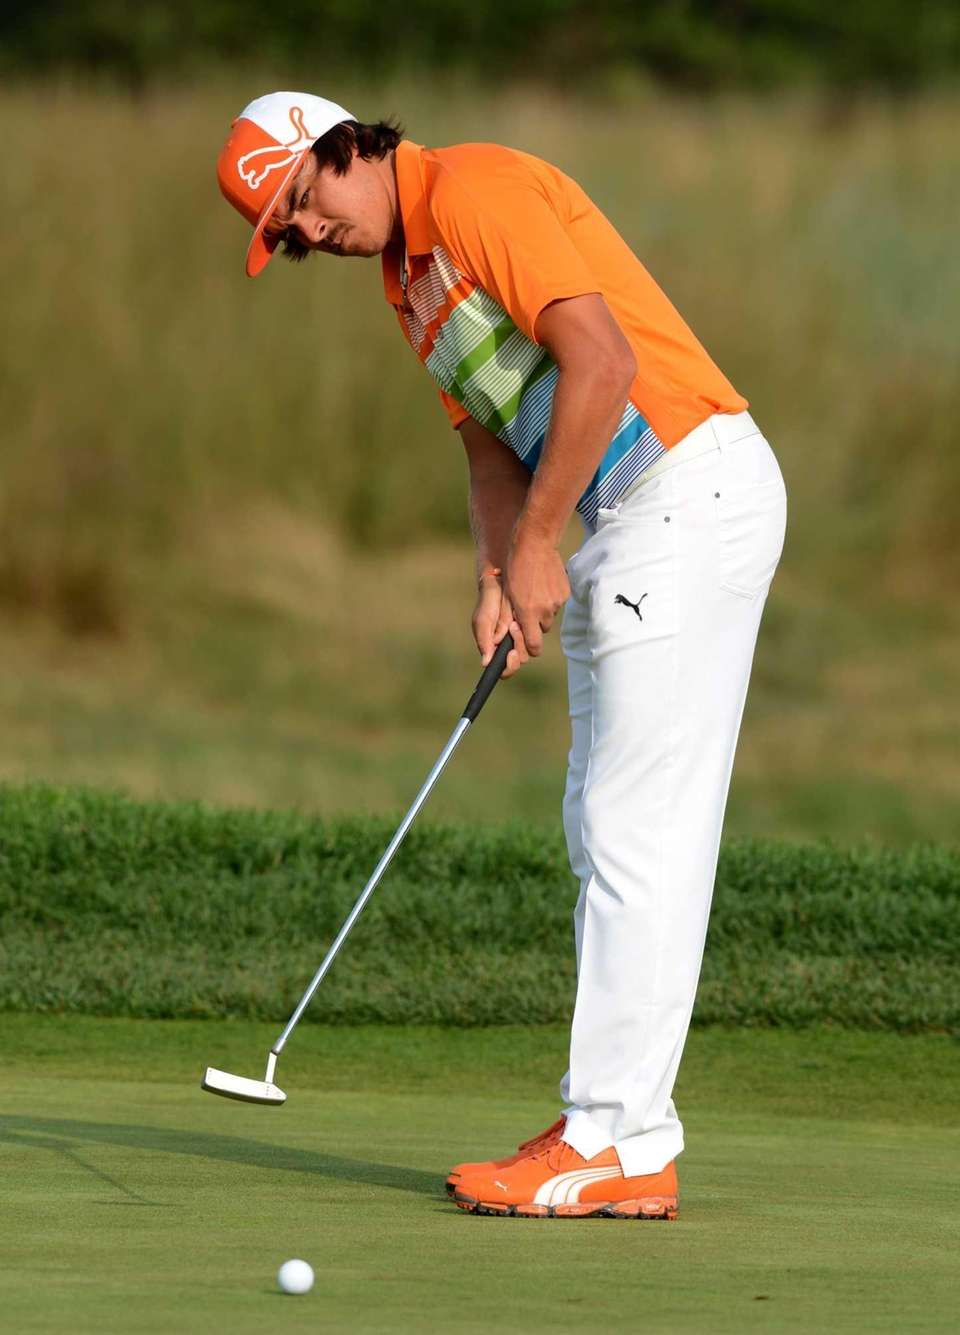 Rickie Fowler putts on the 11th hole. (Aug.